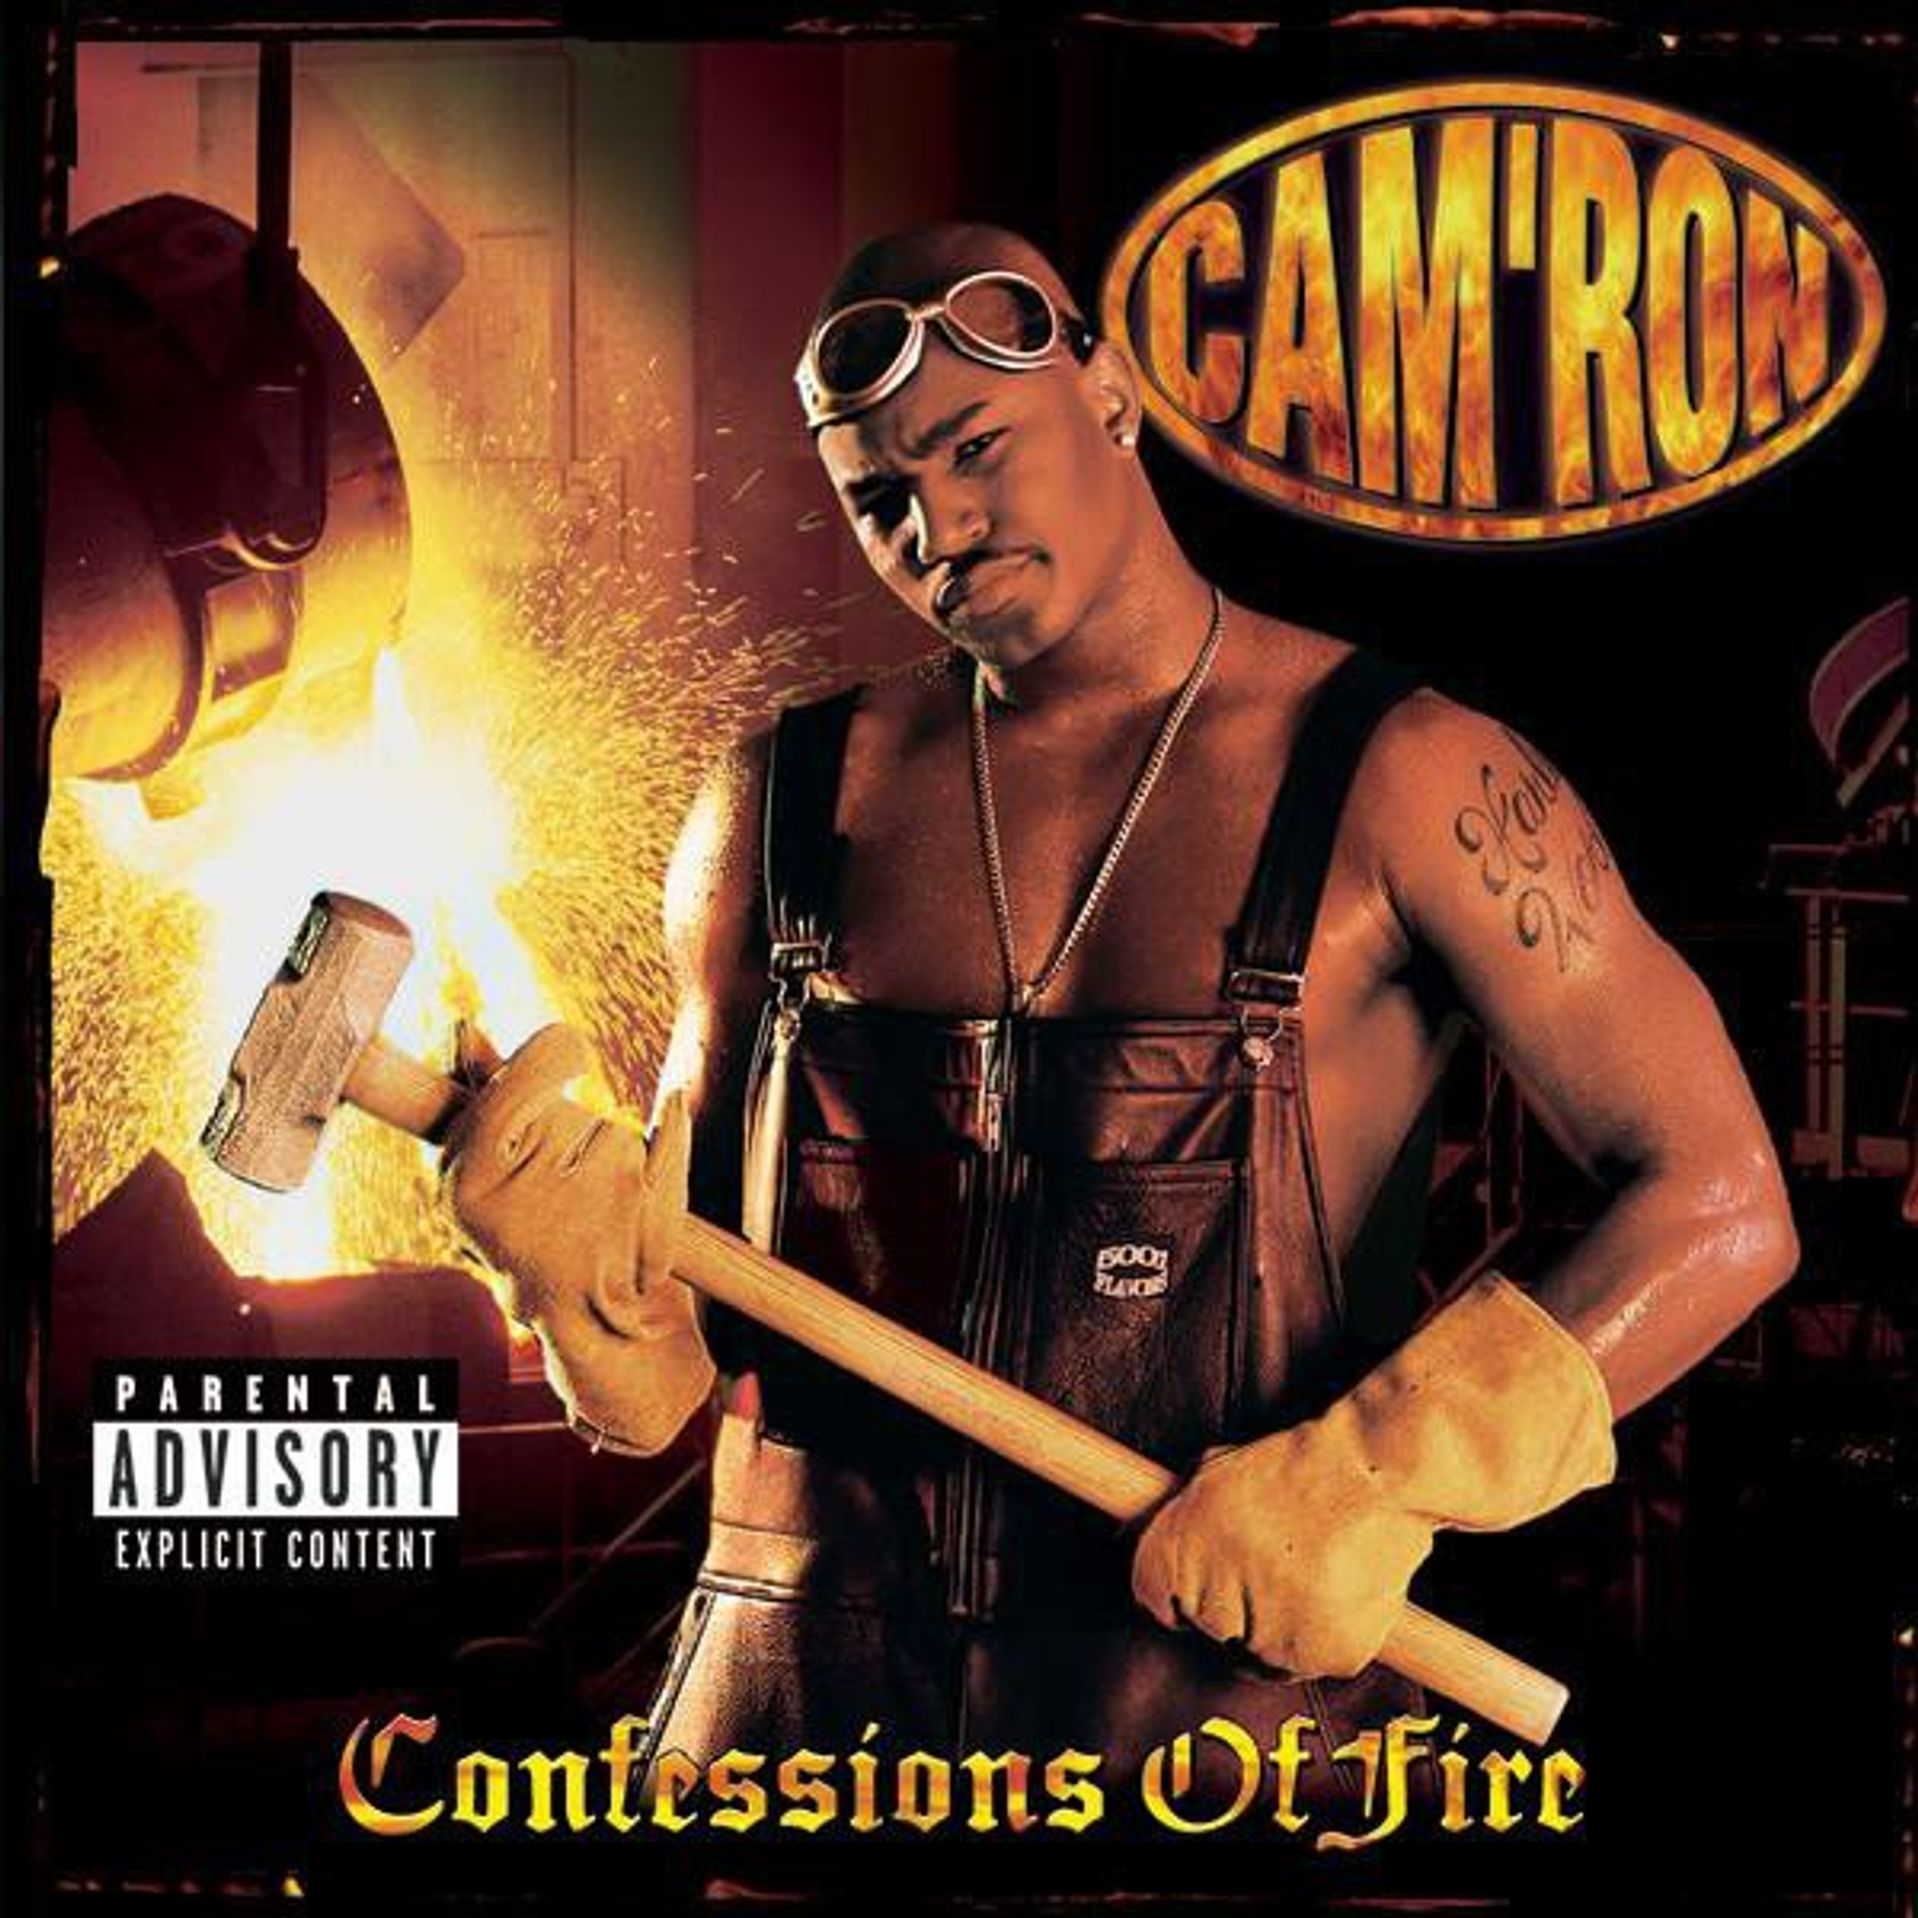 Album Title: Confessions of Fire by: Cam